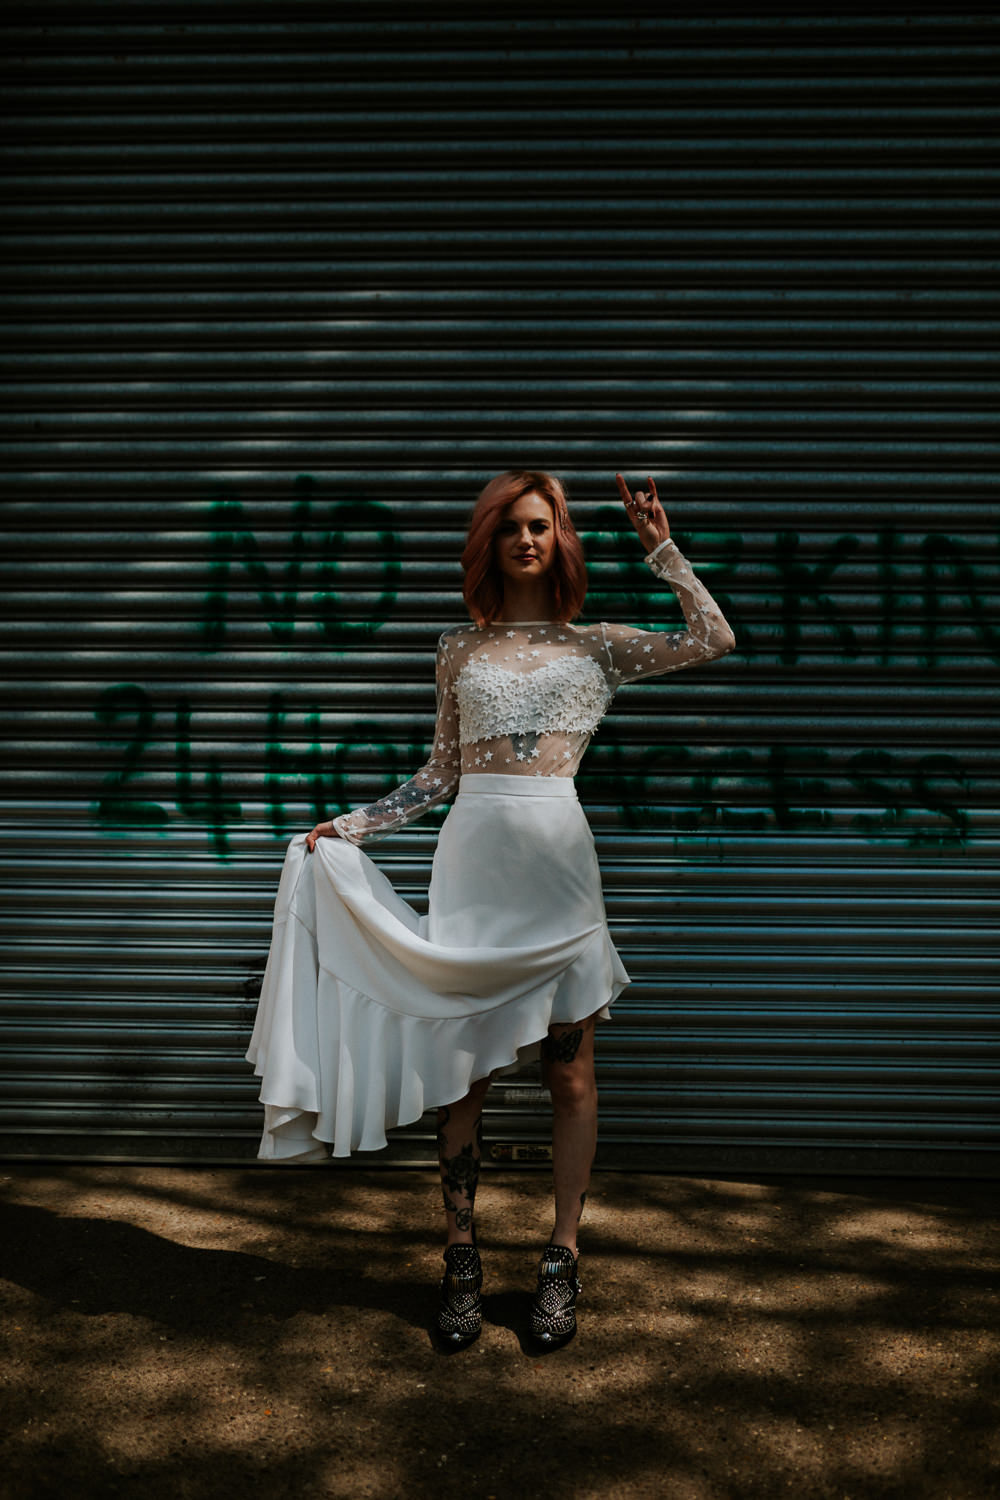 Dress Gown Bride Bridal Top Skirt Train Star Celestial Neon Sign Wedding Ideas State Of Love and Trust Photography